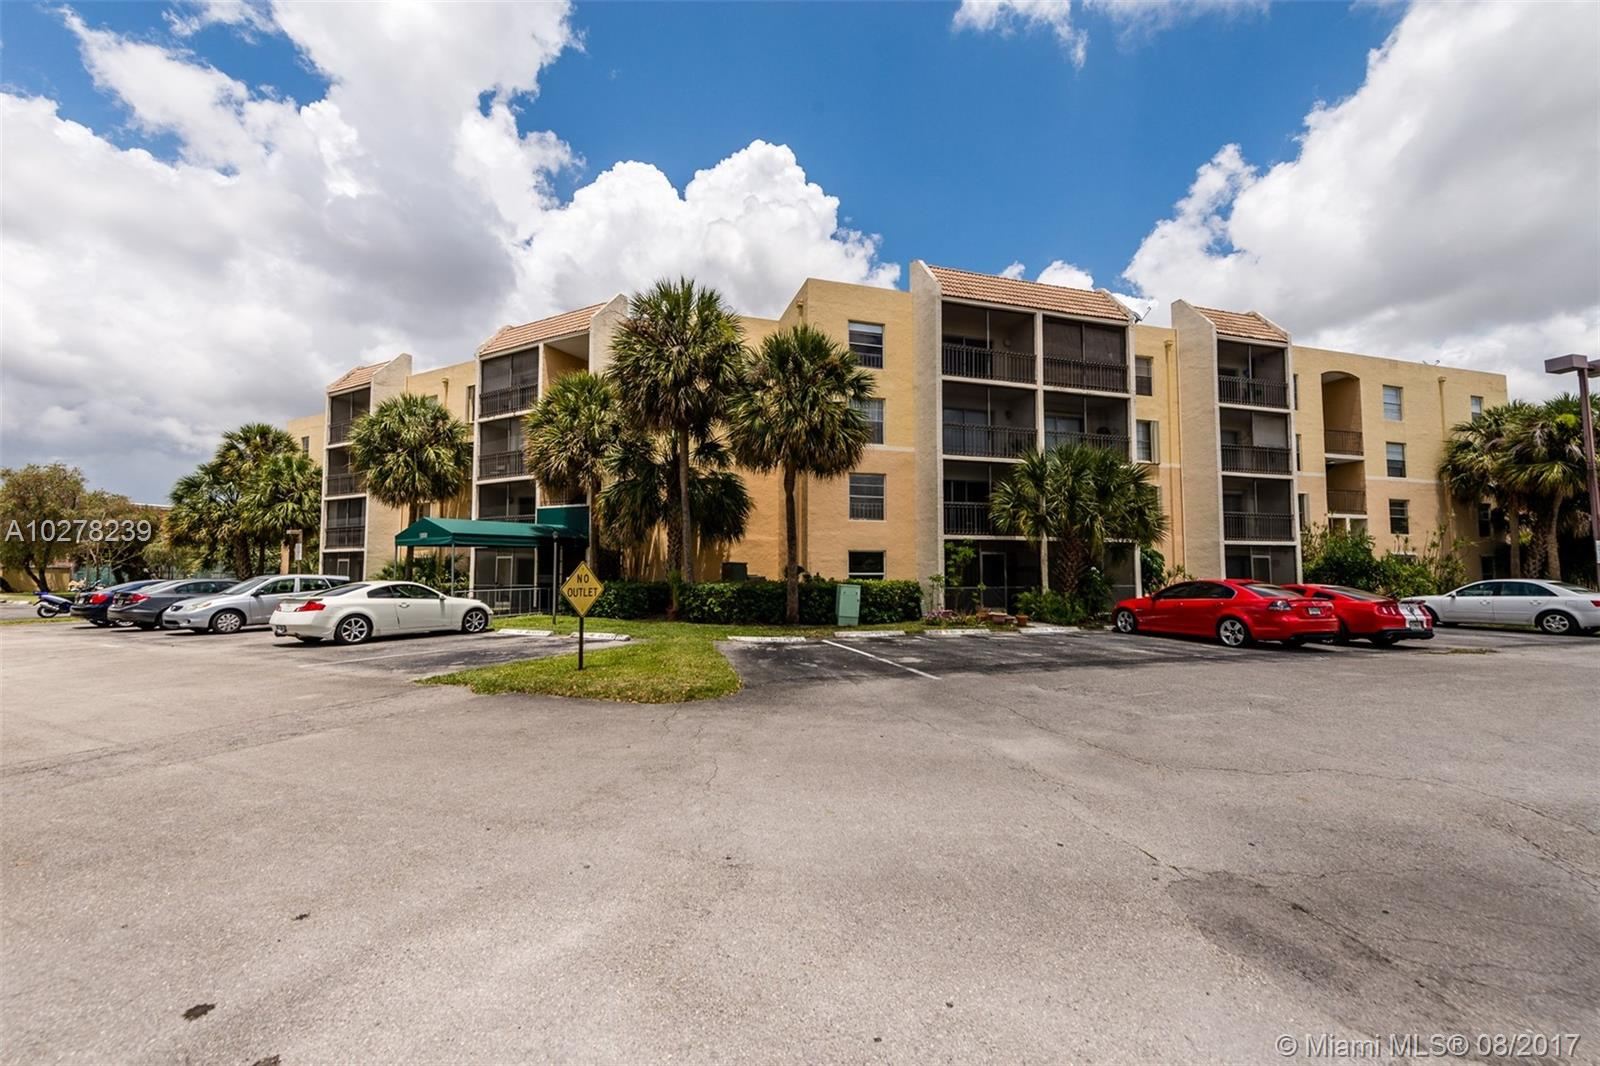 8005 Lake Dr, 113 - Doral, Florida